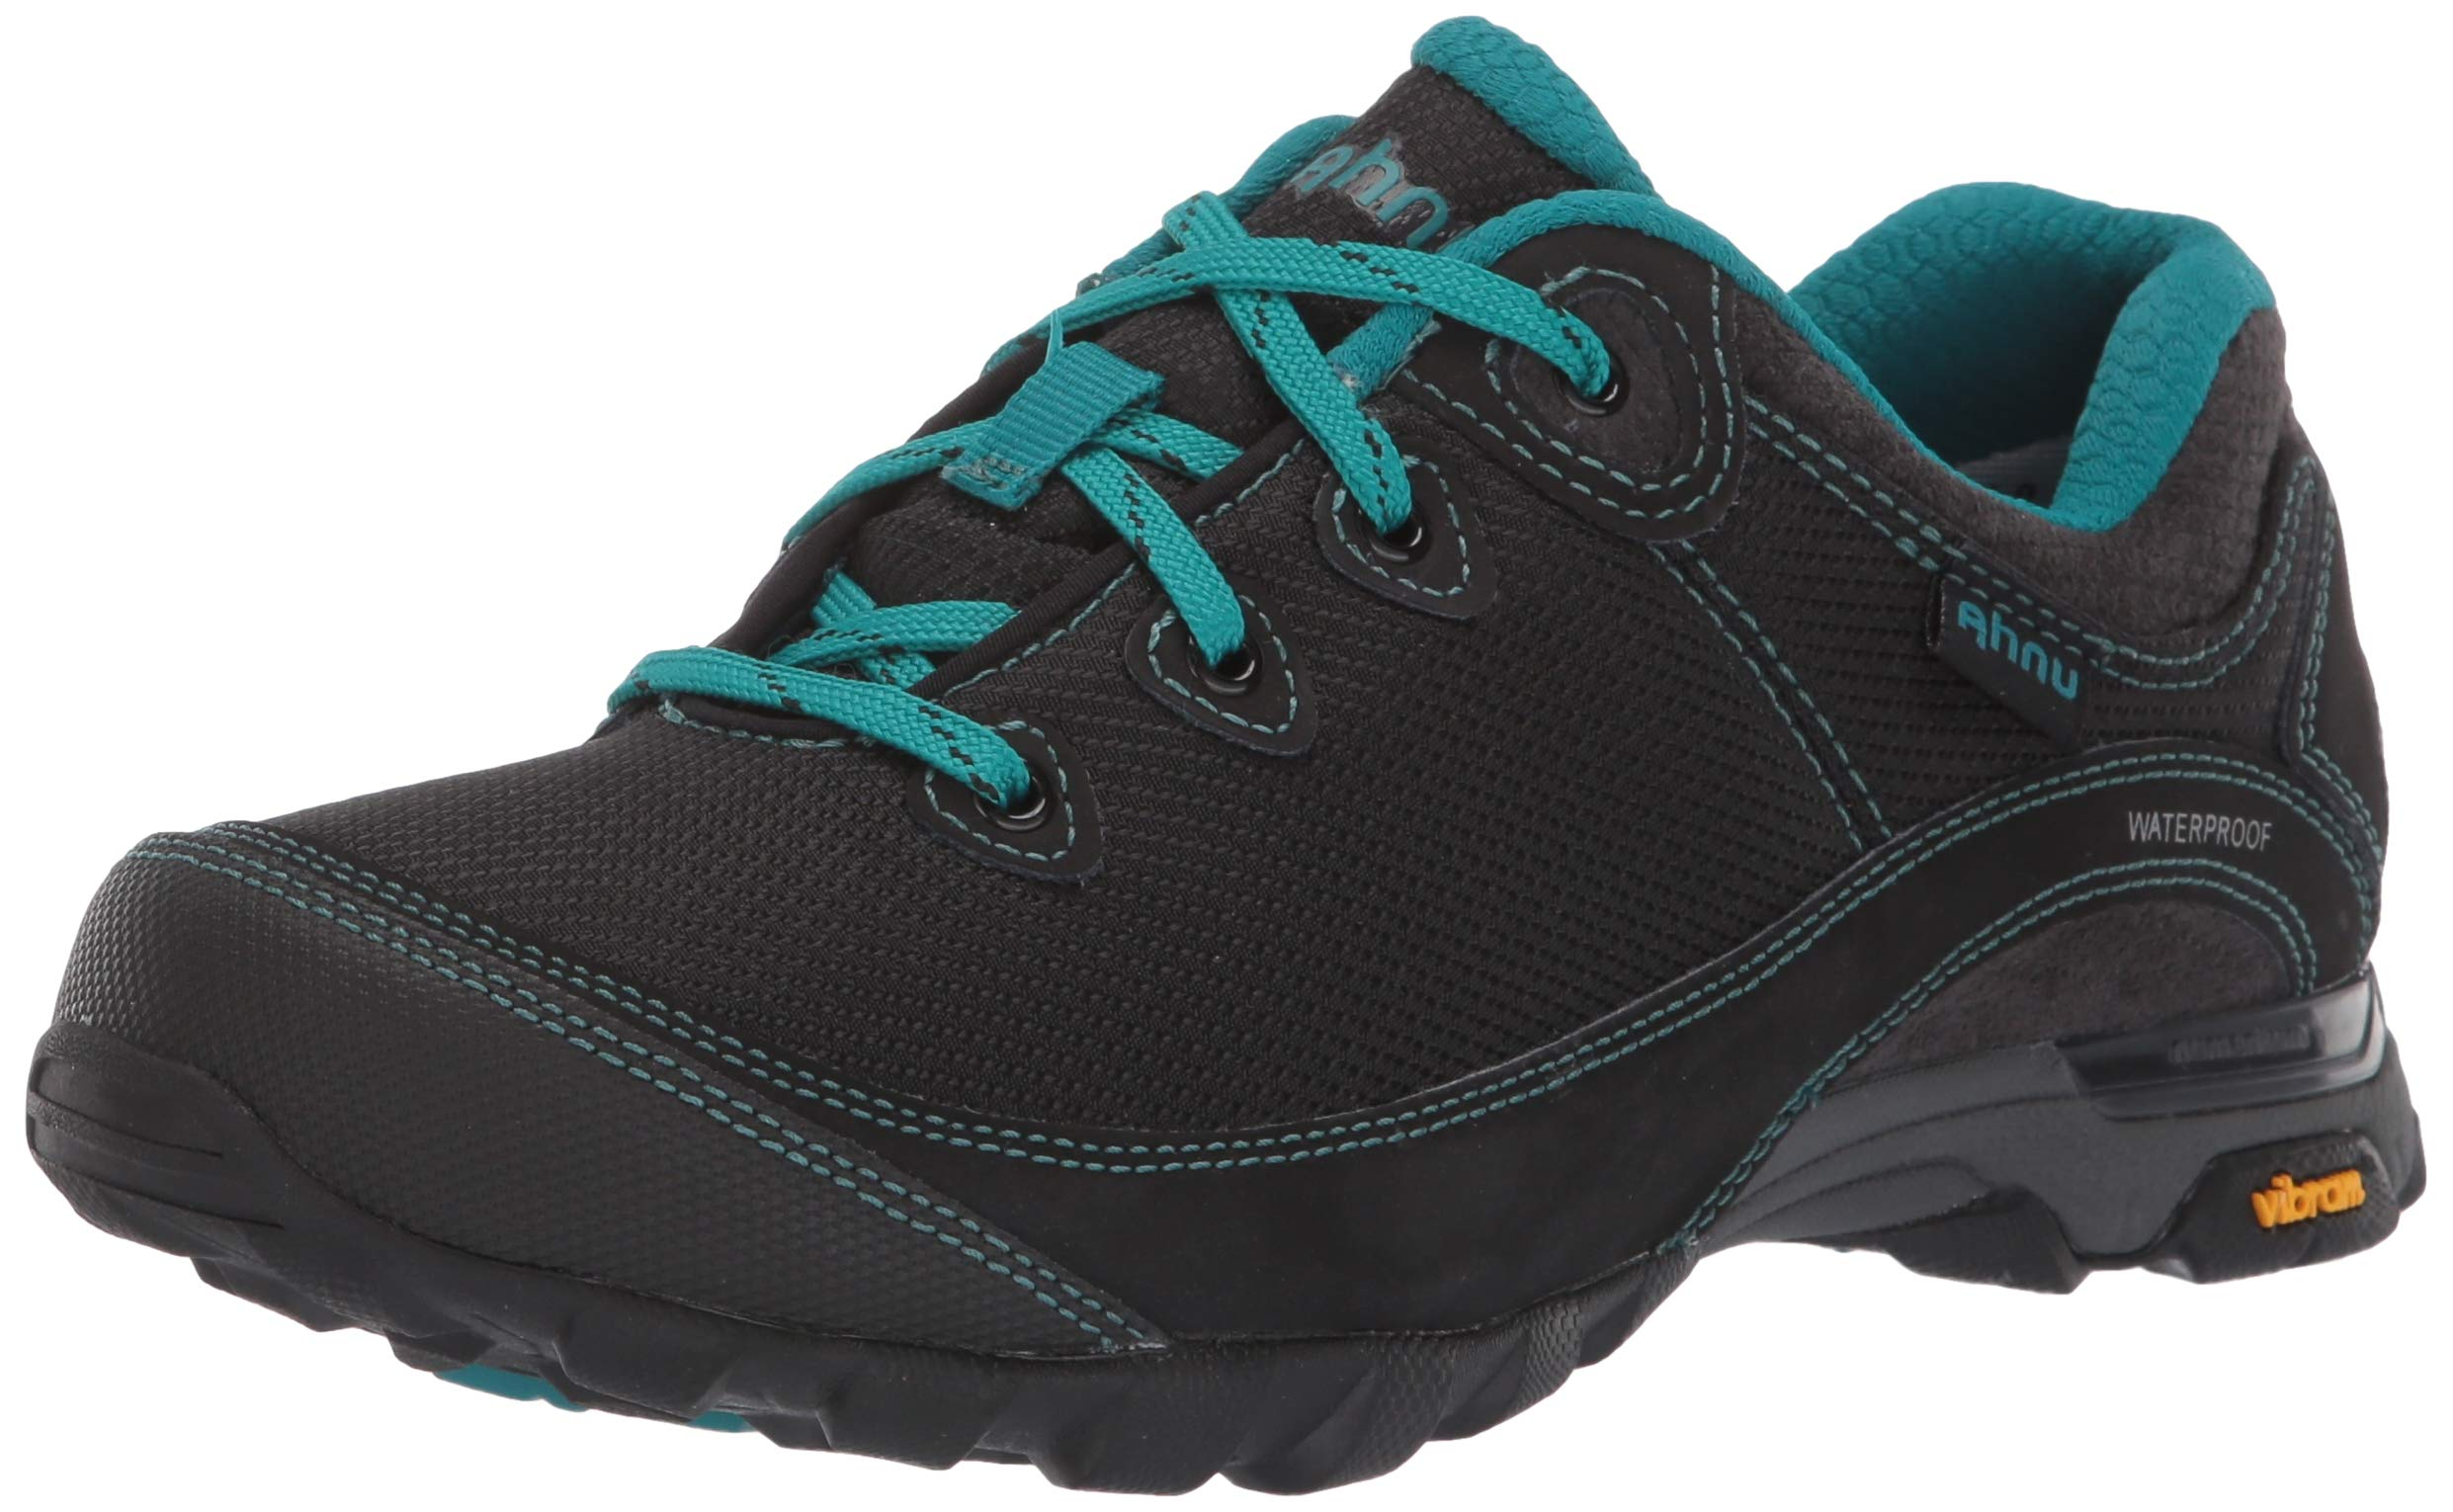 Ahnu Women's W Sugarpine II Waterproof Ripstop Hiking Shoe, Black, 5 Medium US by Ahnu